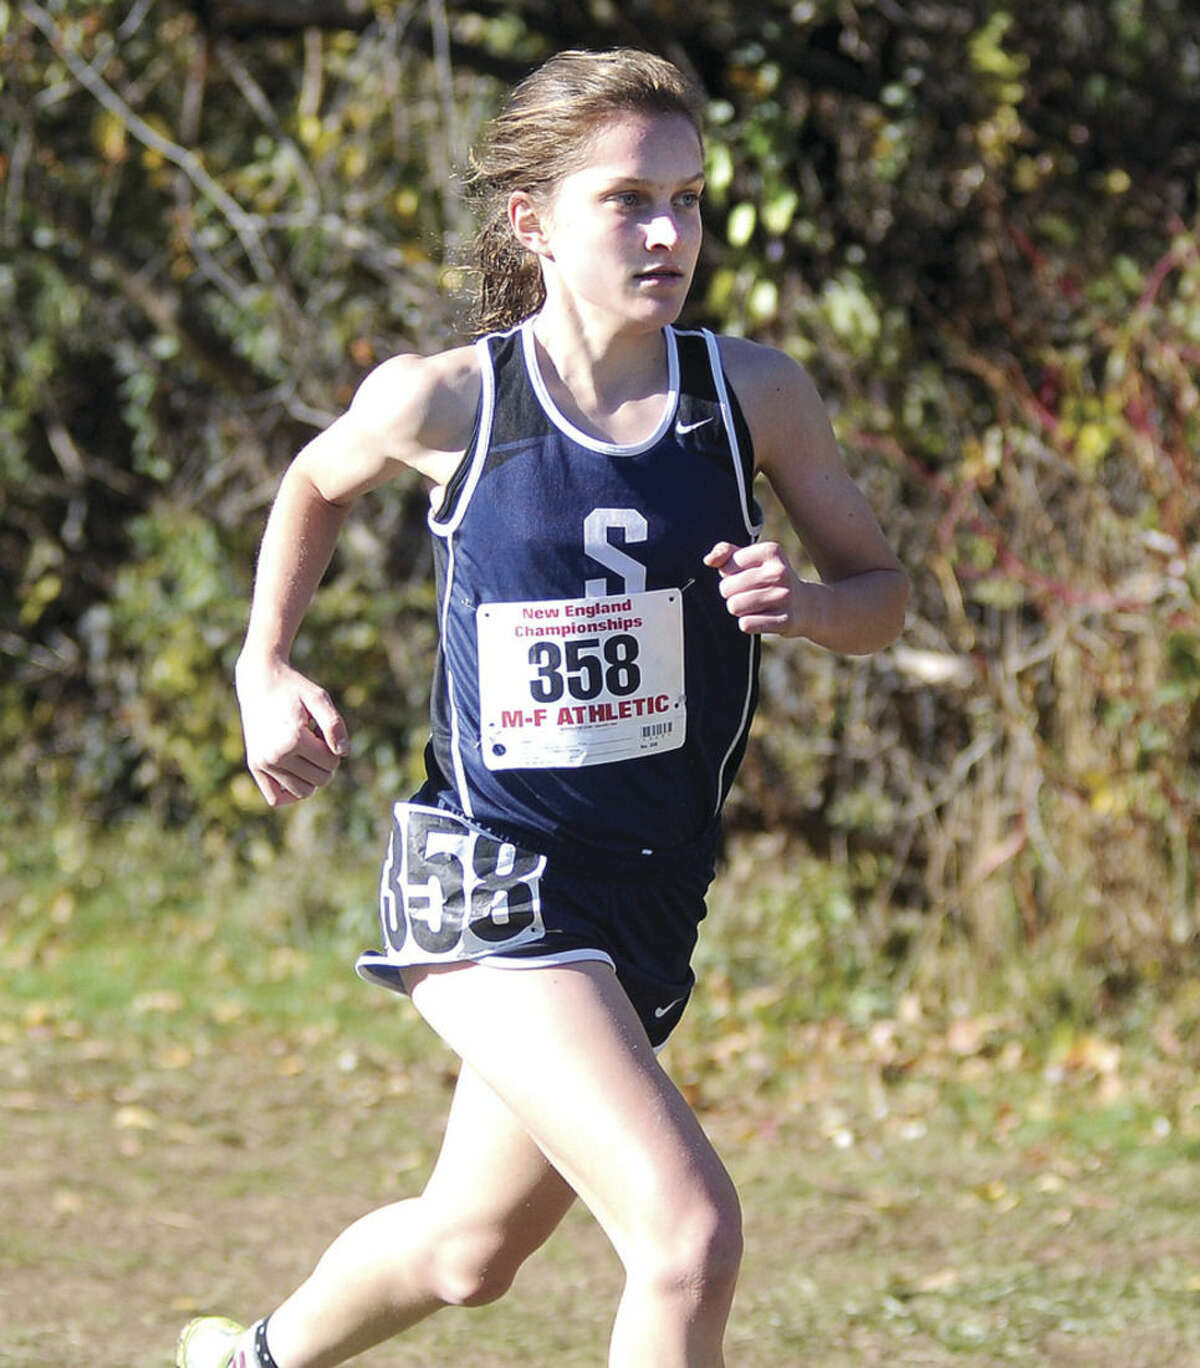 Hour photo/John Nash Staples High junior Hannah DeBalsi ran to her second straight New England cross country championship on Saturday at Wickham Park in Manchester.